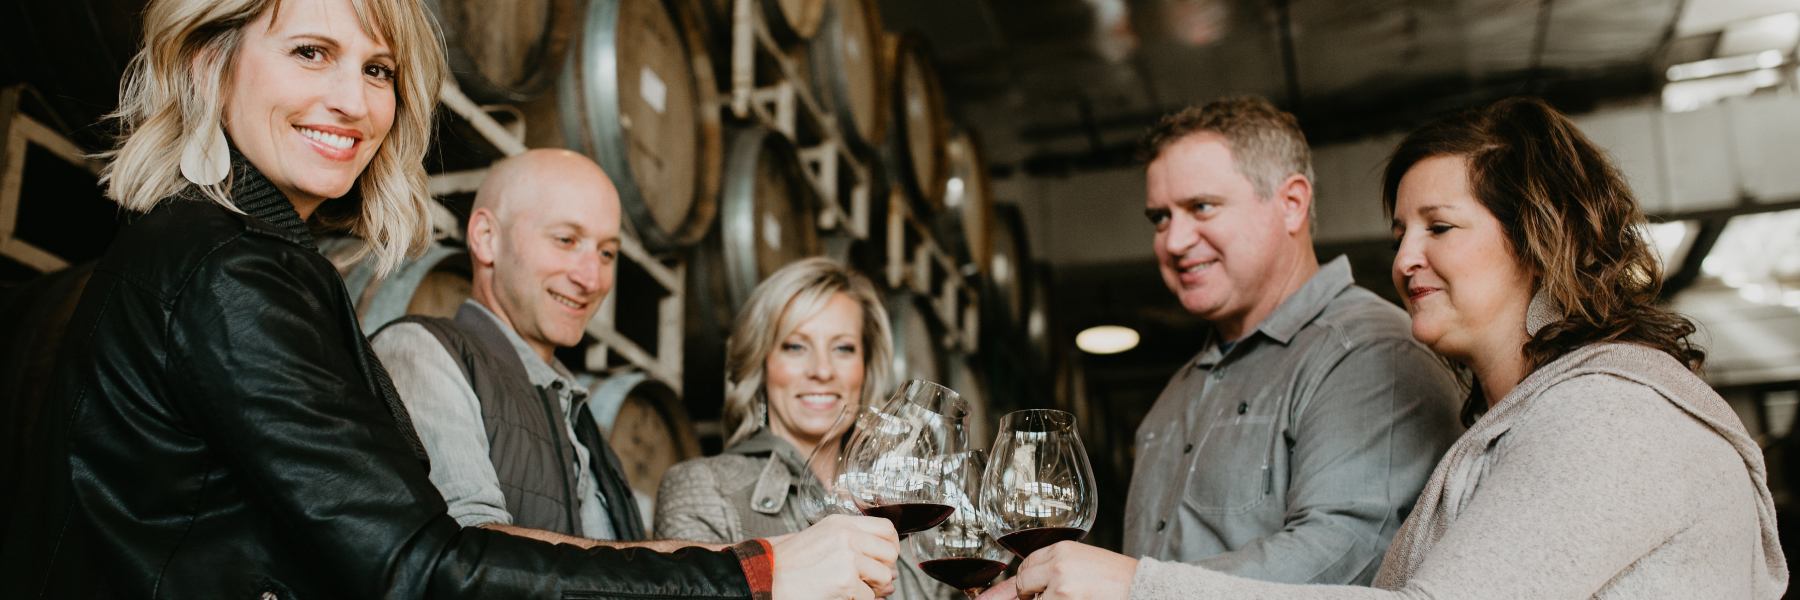 Enjoy the holidays at Elizabeth Chambers Cellar in McMinnville, Oregon